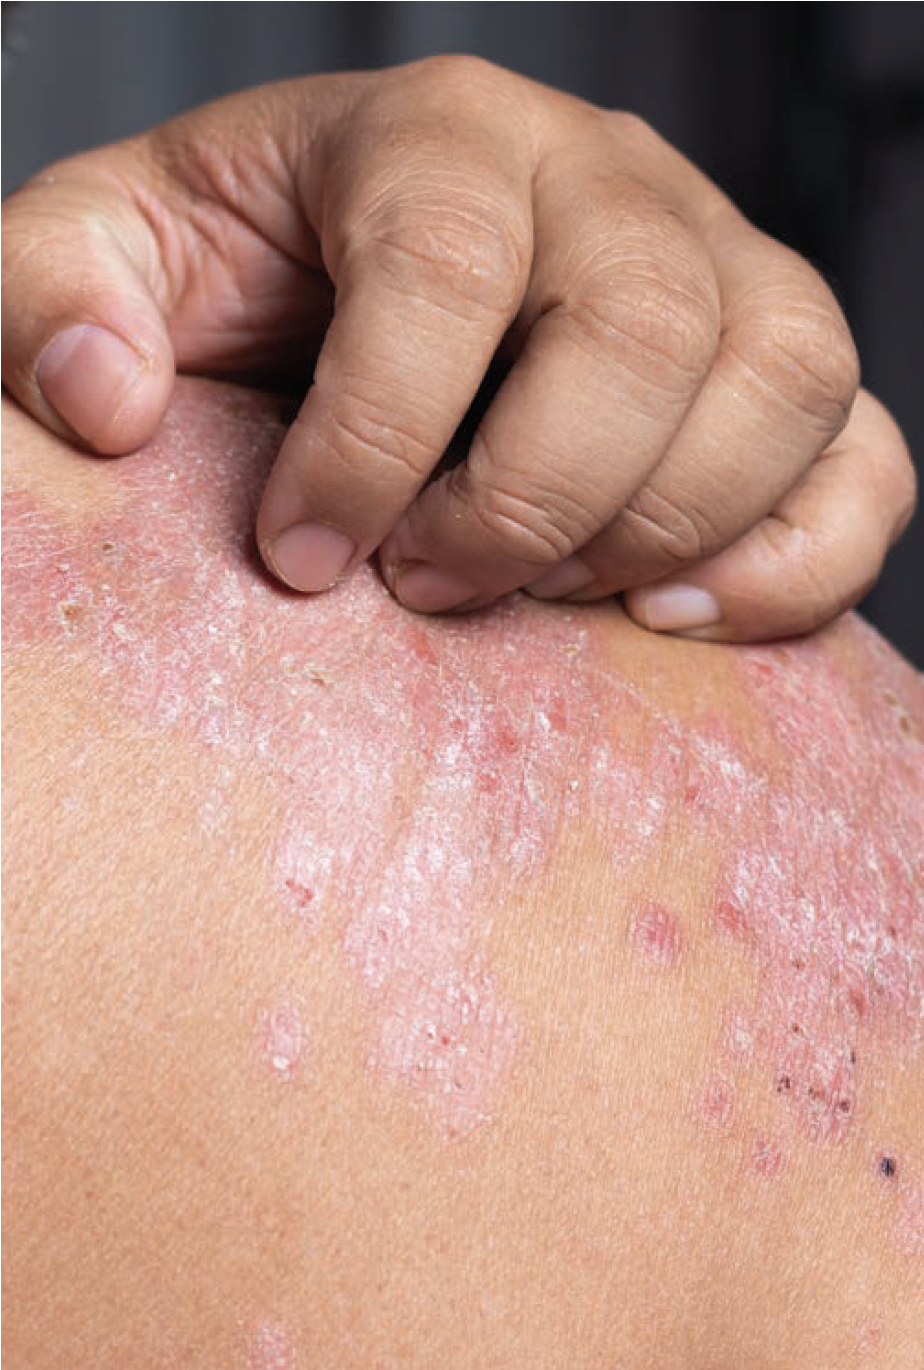 Psoriasis in white patient